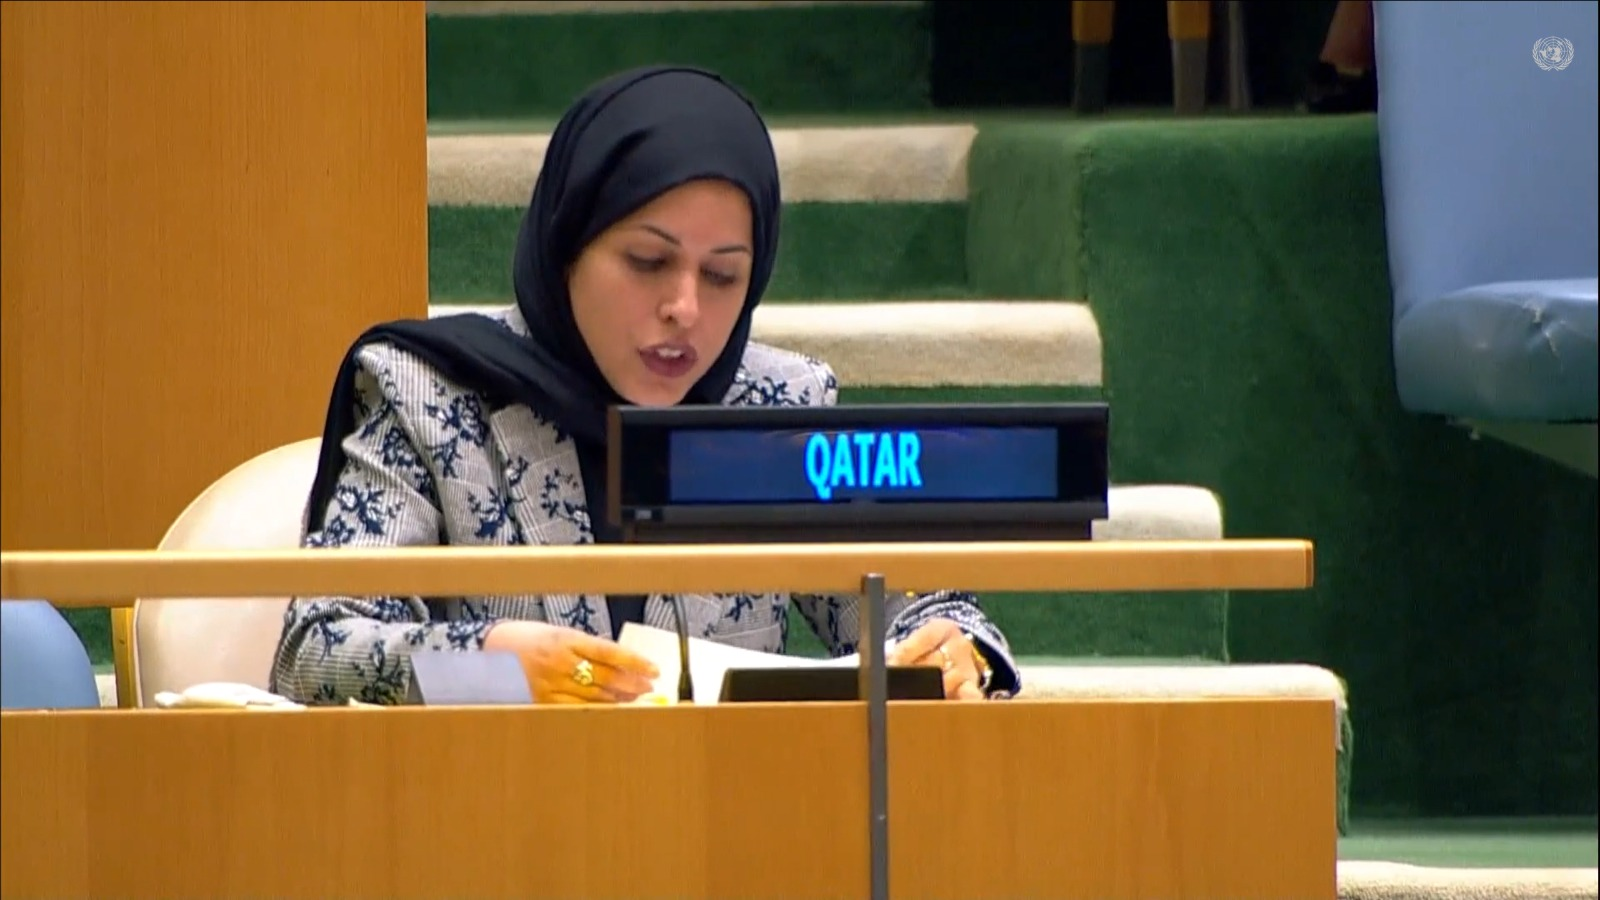 Qatar Affirms That It Will Remain Platform for Cooperation Between All Countries